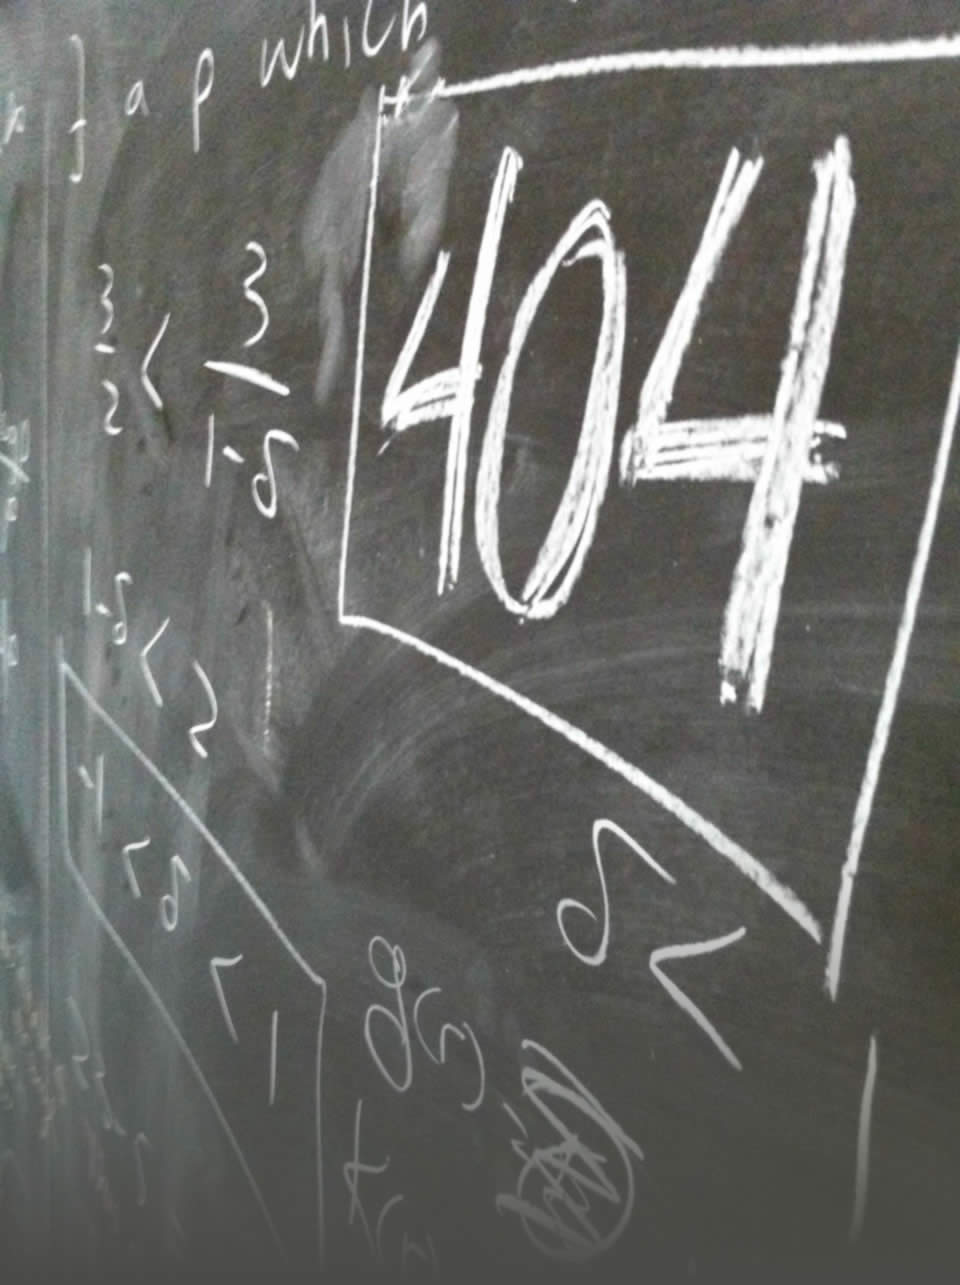 404 amongst math symbols on a chalkboard